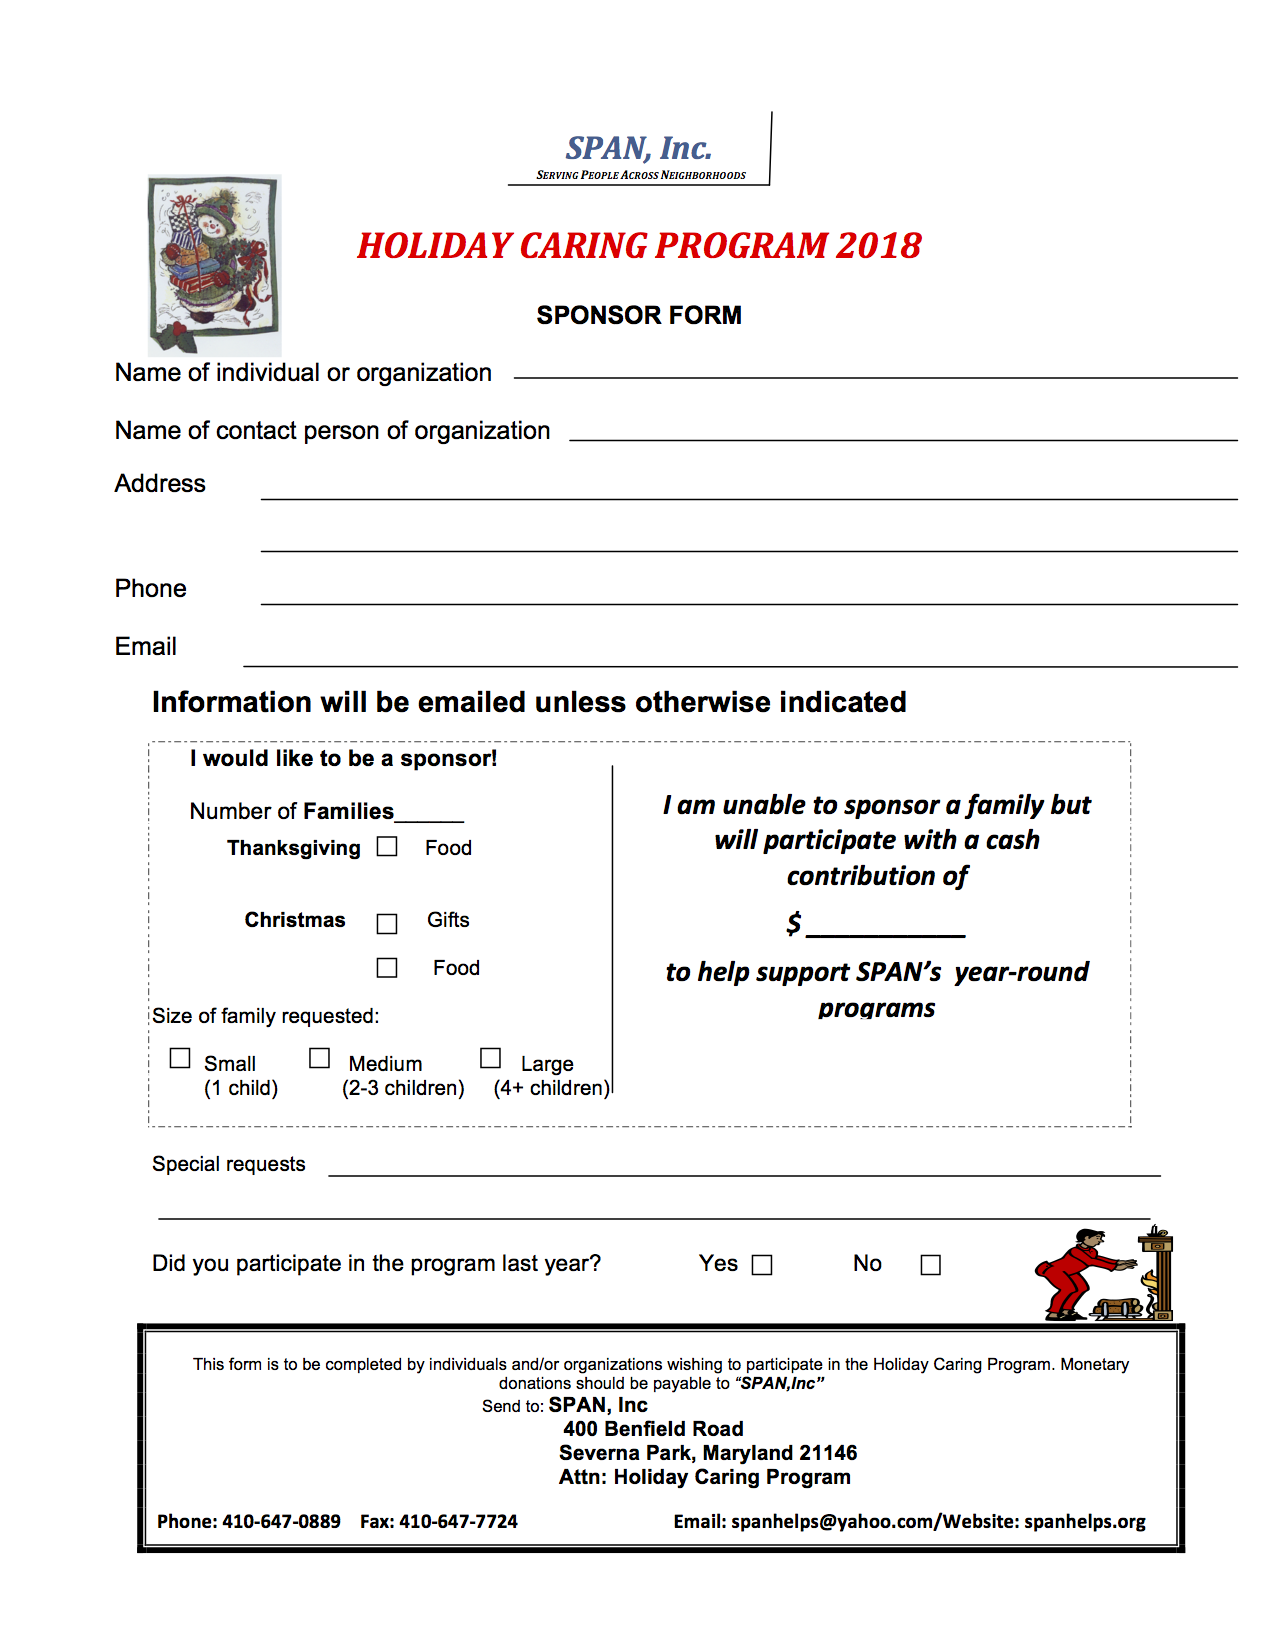 Sign up for Holiday Caring to Help Those in Need Have Better ...